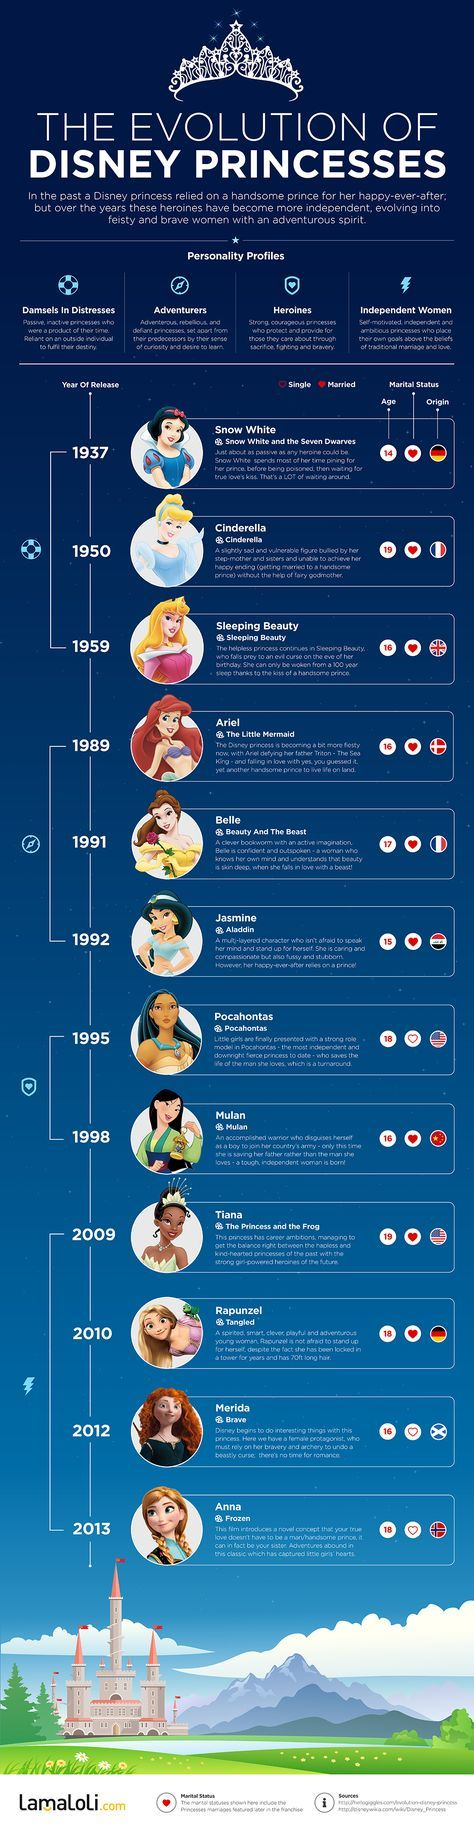 The Evolution of Disney Princesses